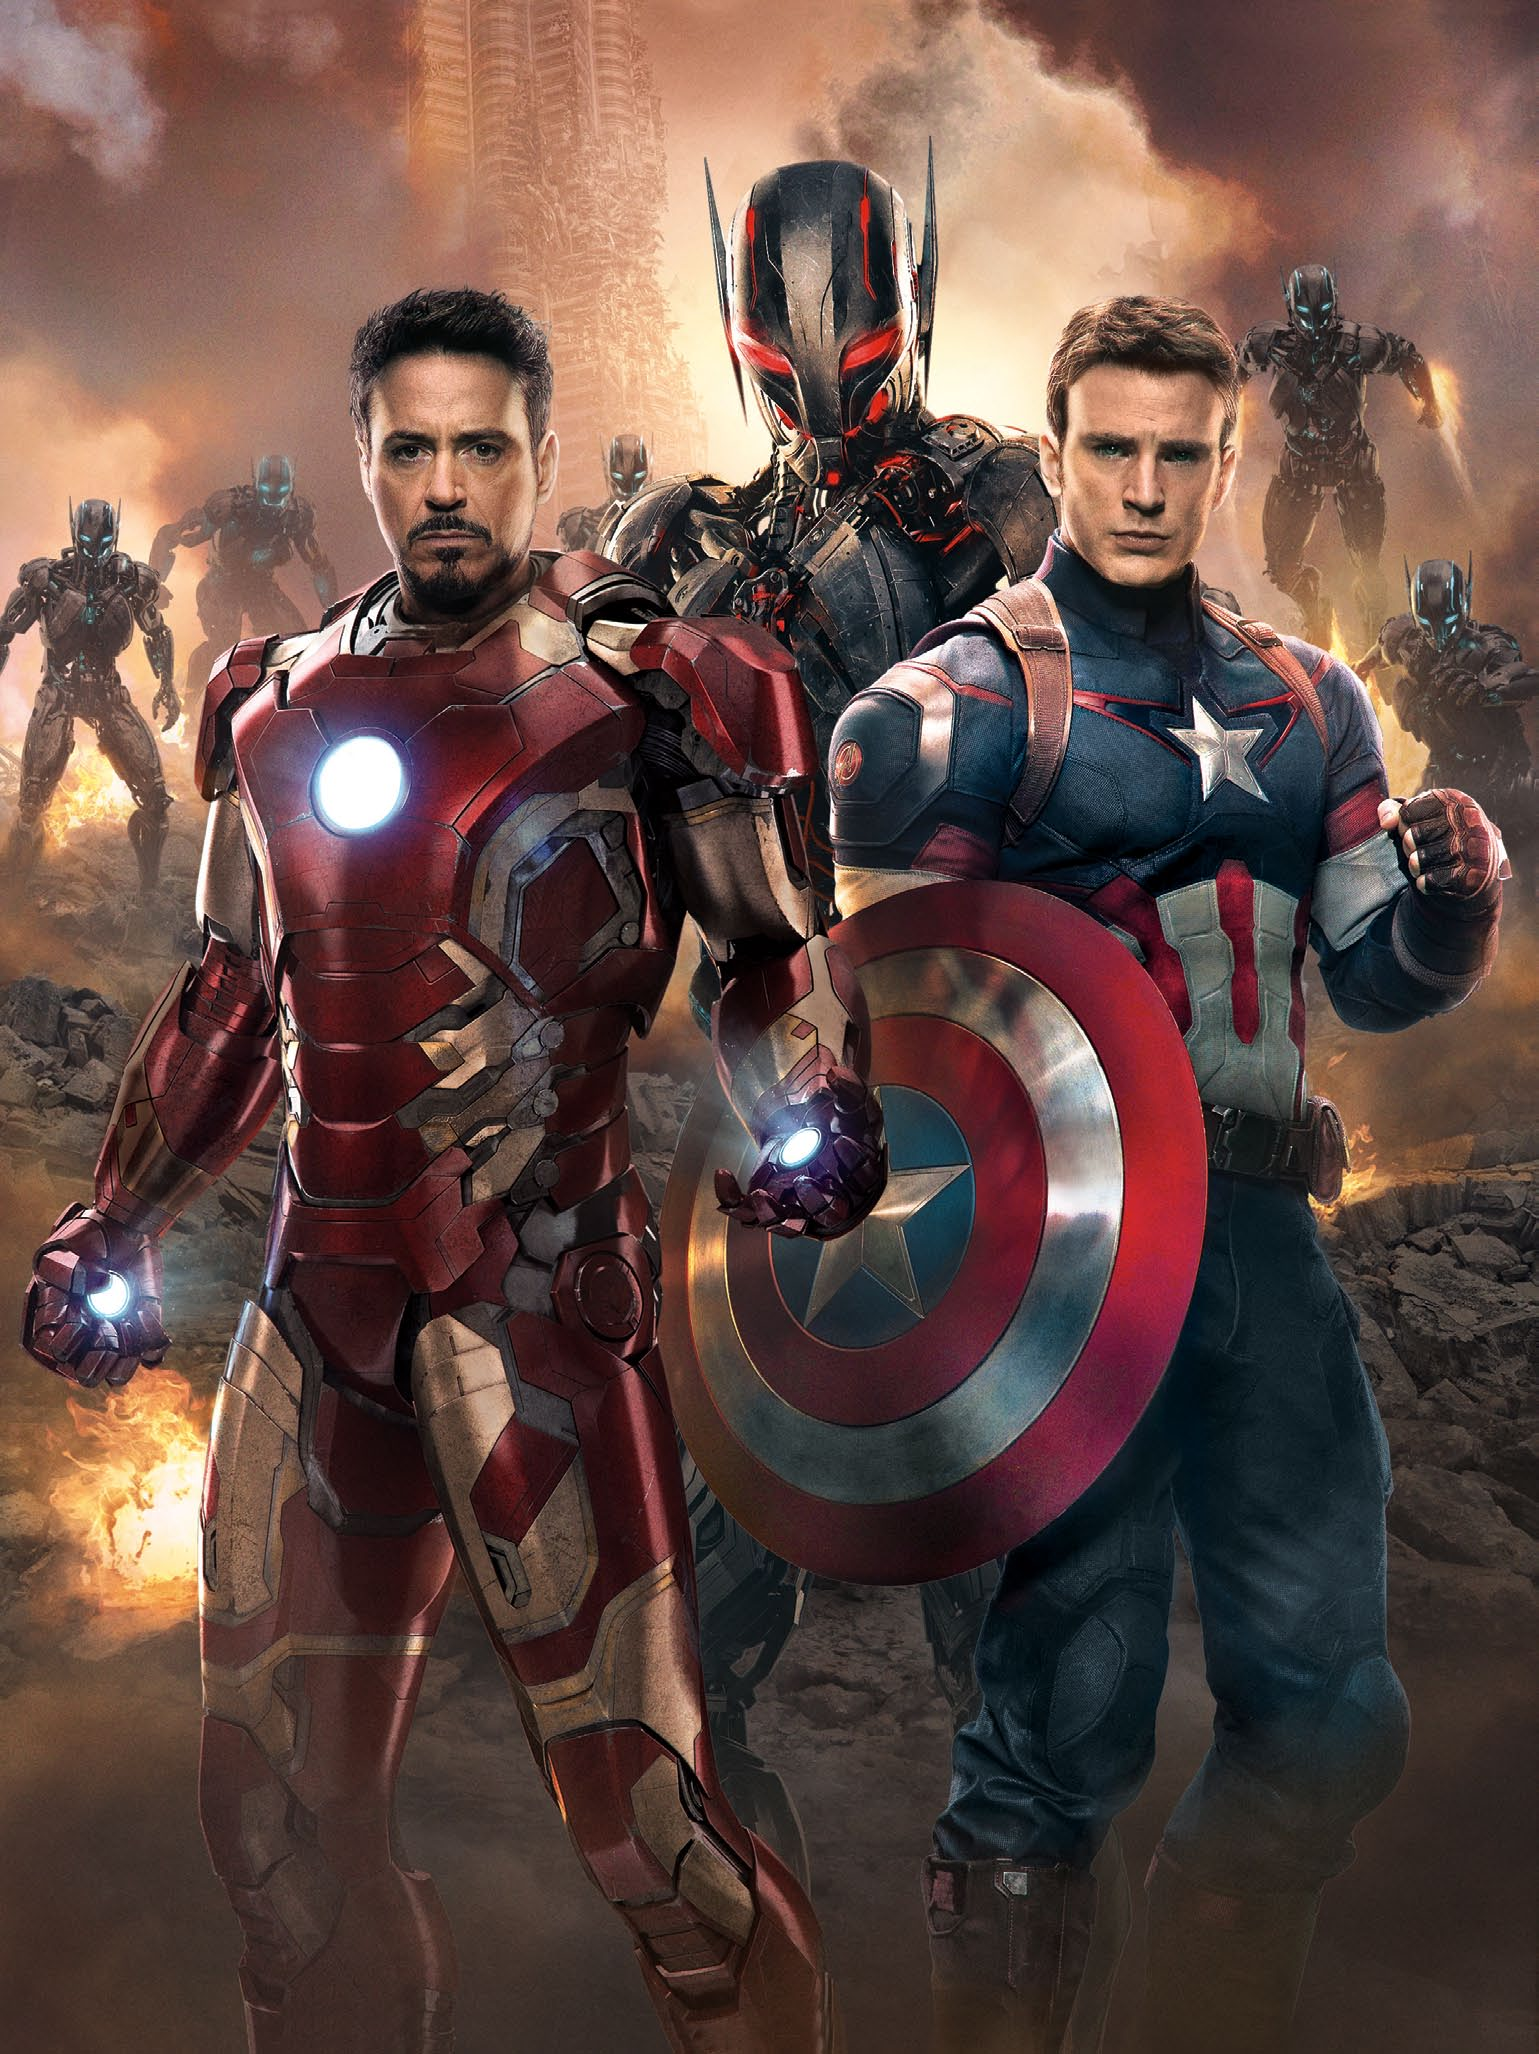 New York Cine Radio #141: Discussions on Avengers: Age of Ultron, Fat Man and Little Boy, Manhattan and Walking Dead